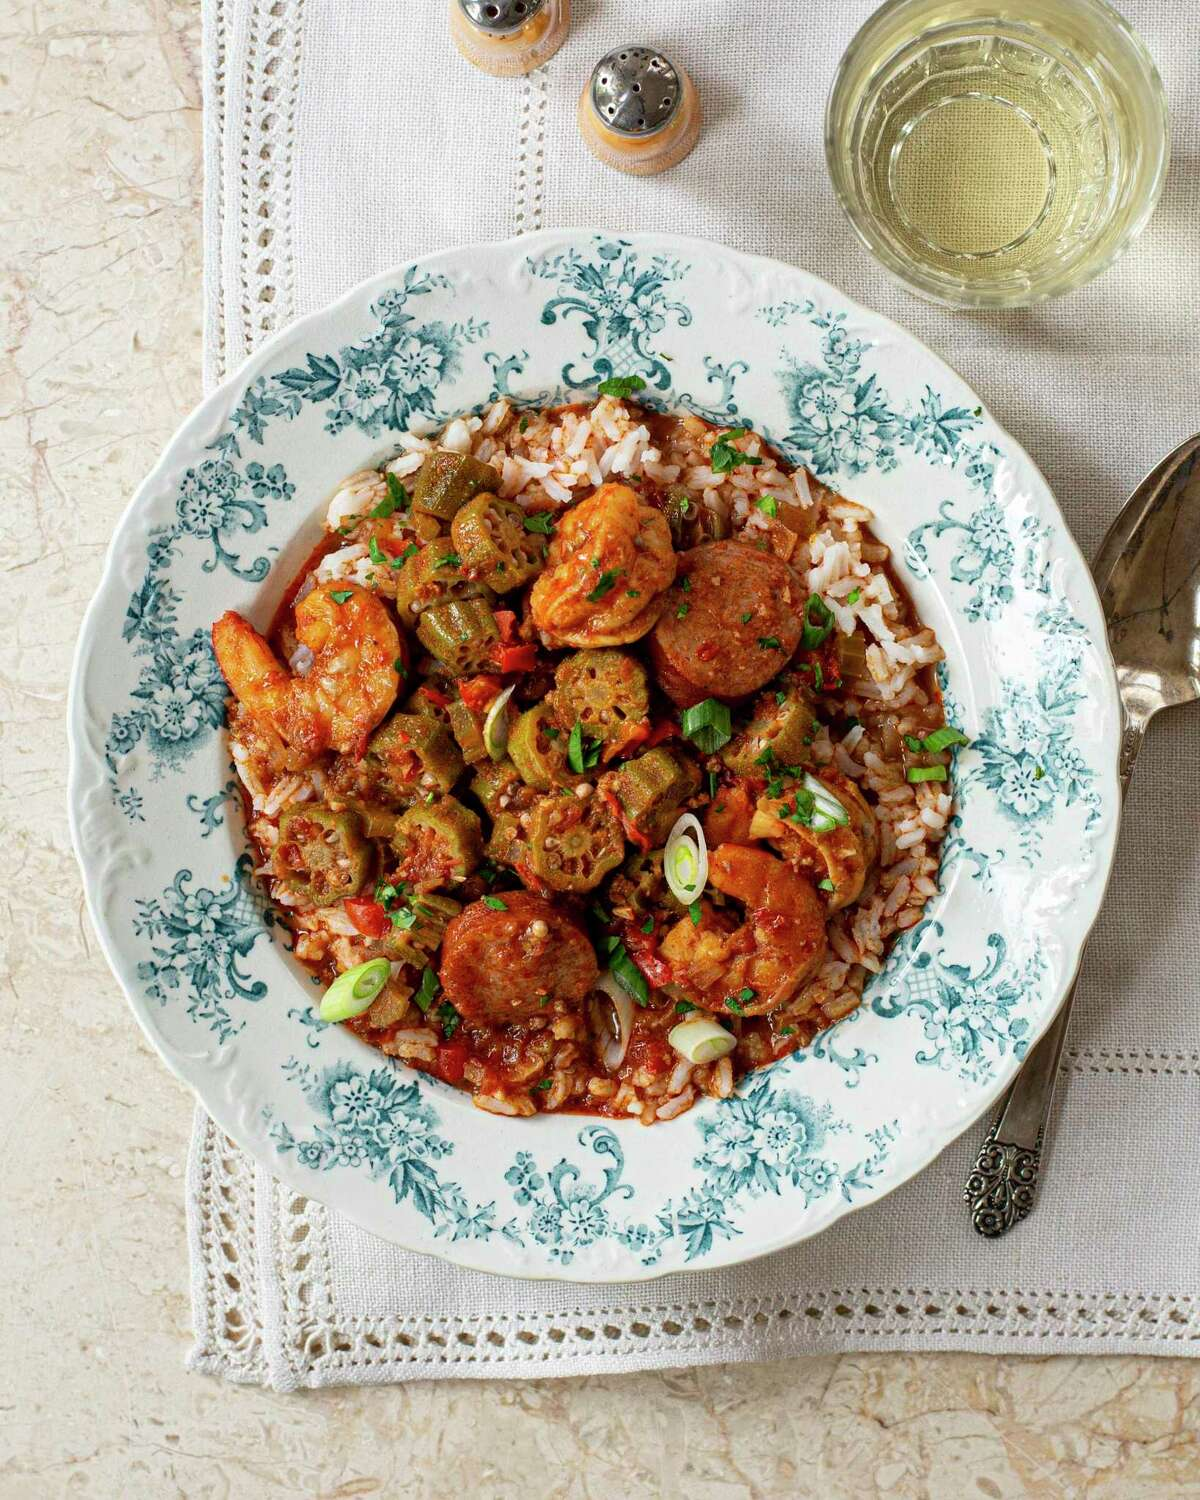 Leah Chase Gumbo is one of the recipes in